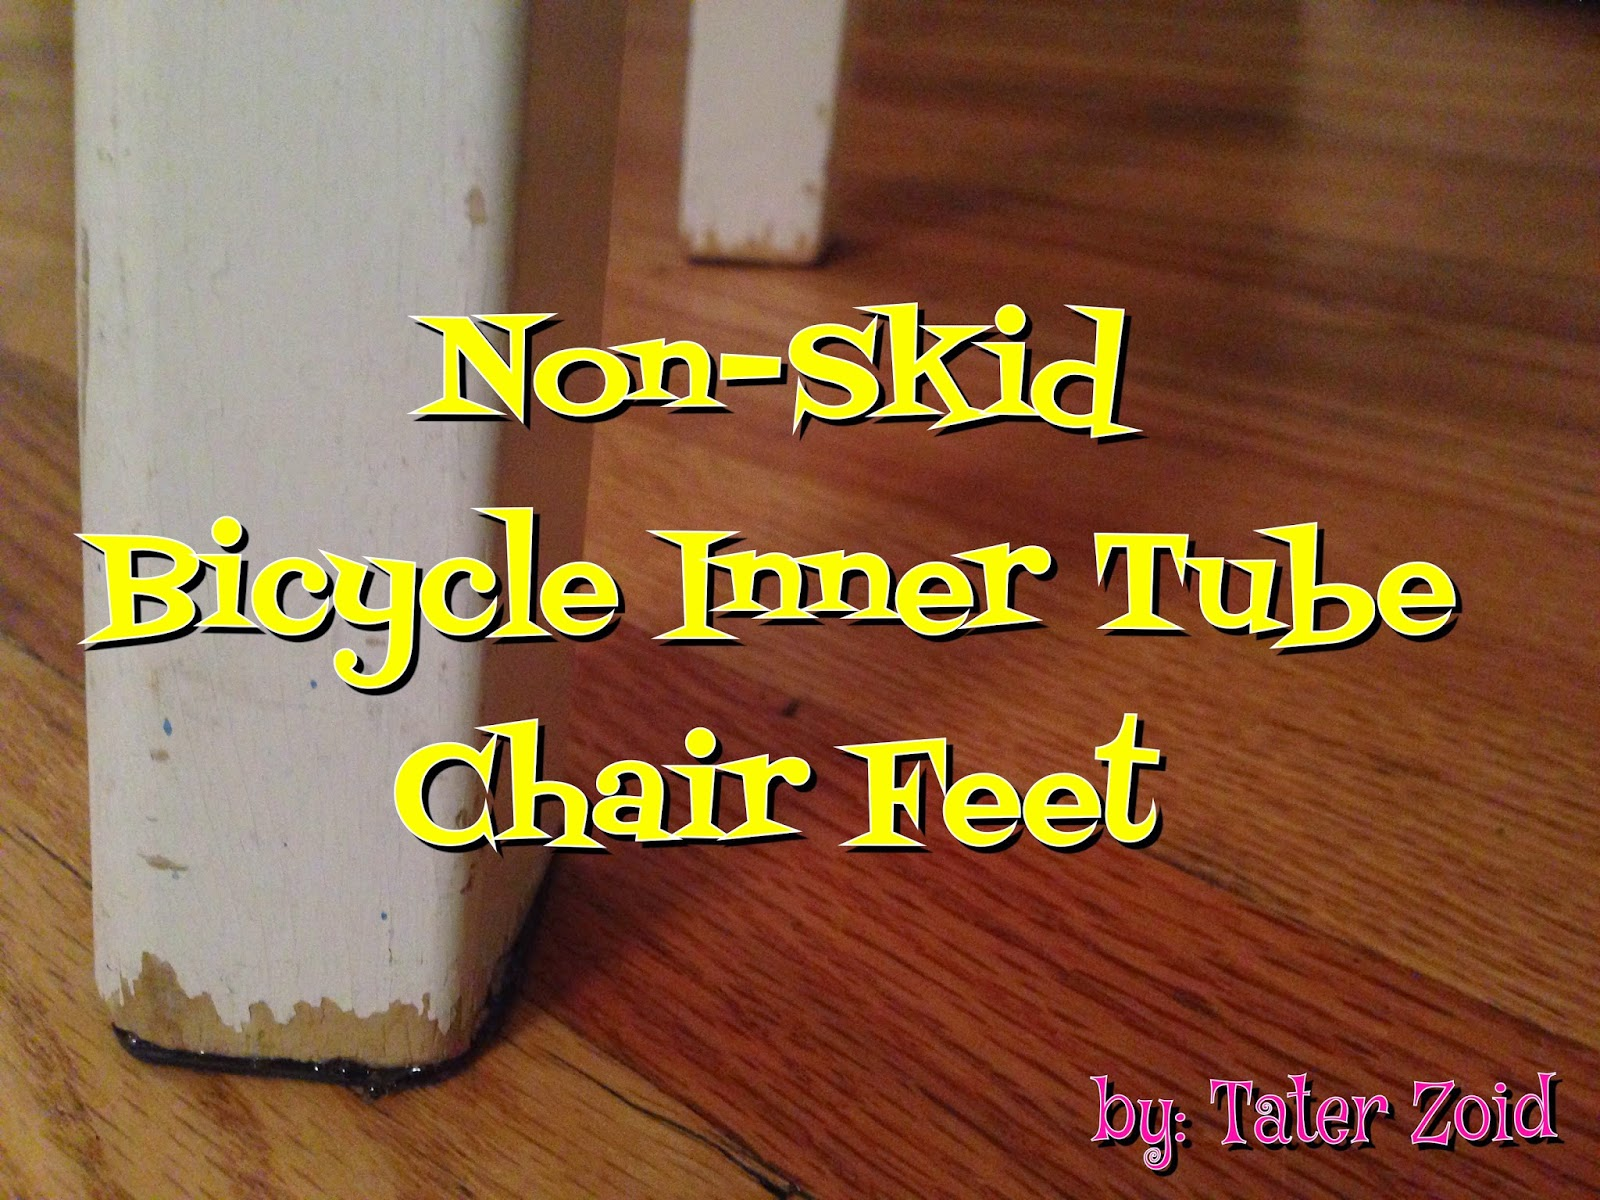 http://www.instructables.com/id/Anti-Skid-Chair-Feet-From-Recycled-Inner-Tube/